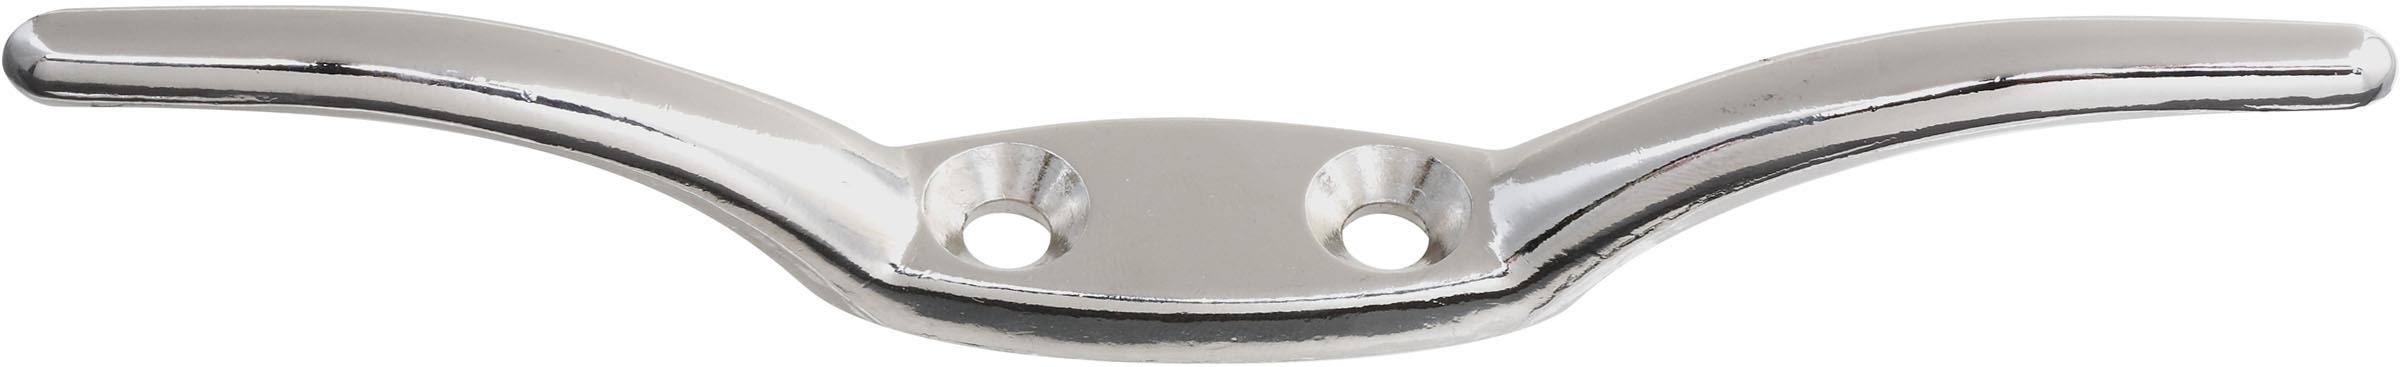 National Manufacturing Zinc Rope Cleat - Nickel, 6""